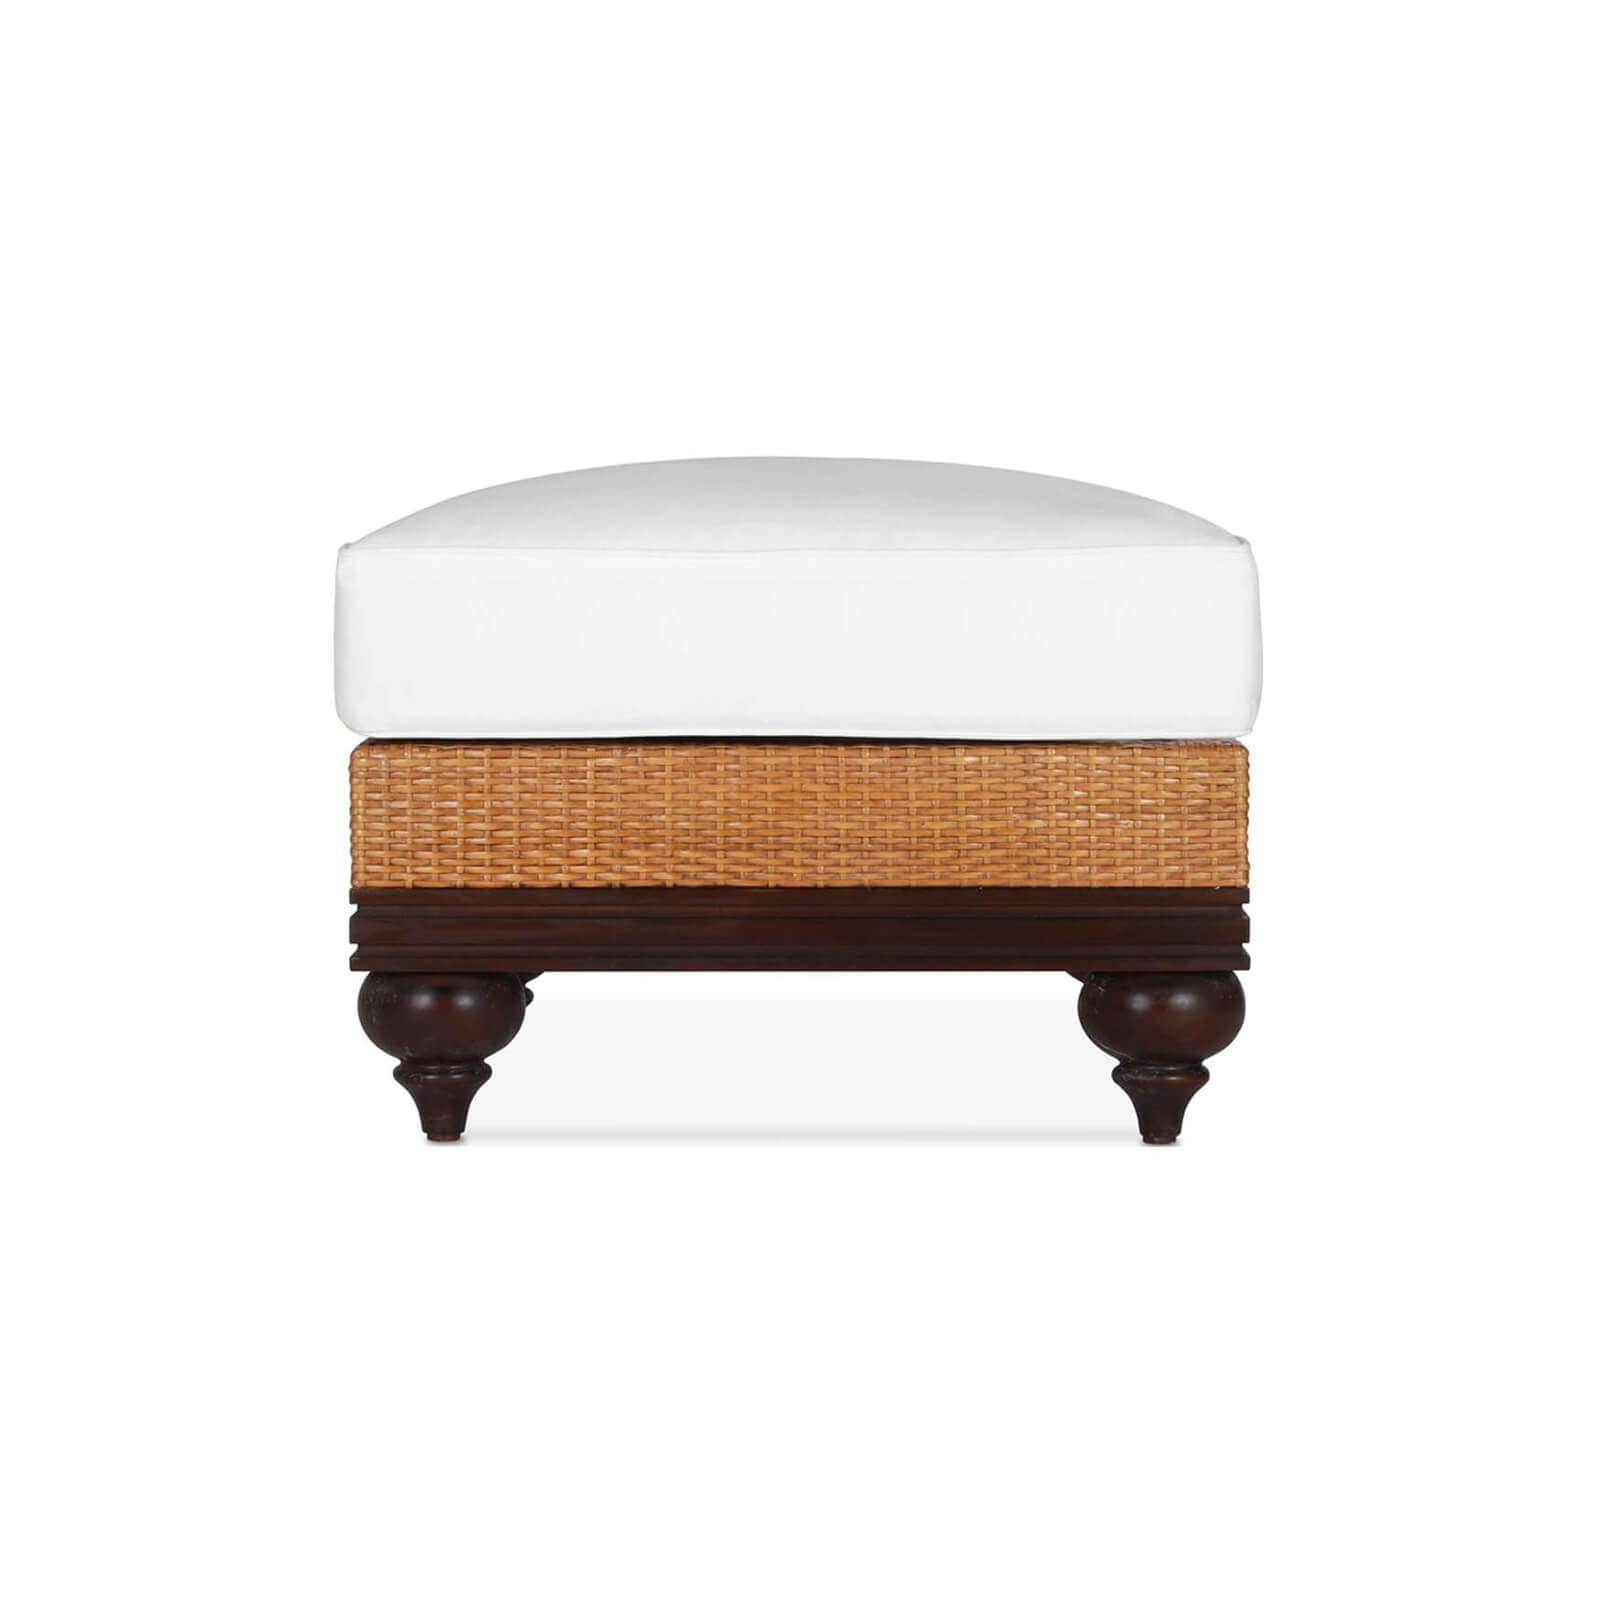 PLANTATION OTTOMAN 3 - STUART MEMBERY HOME COLLECTION